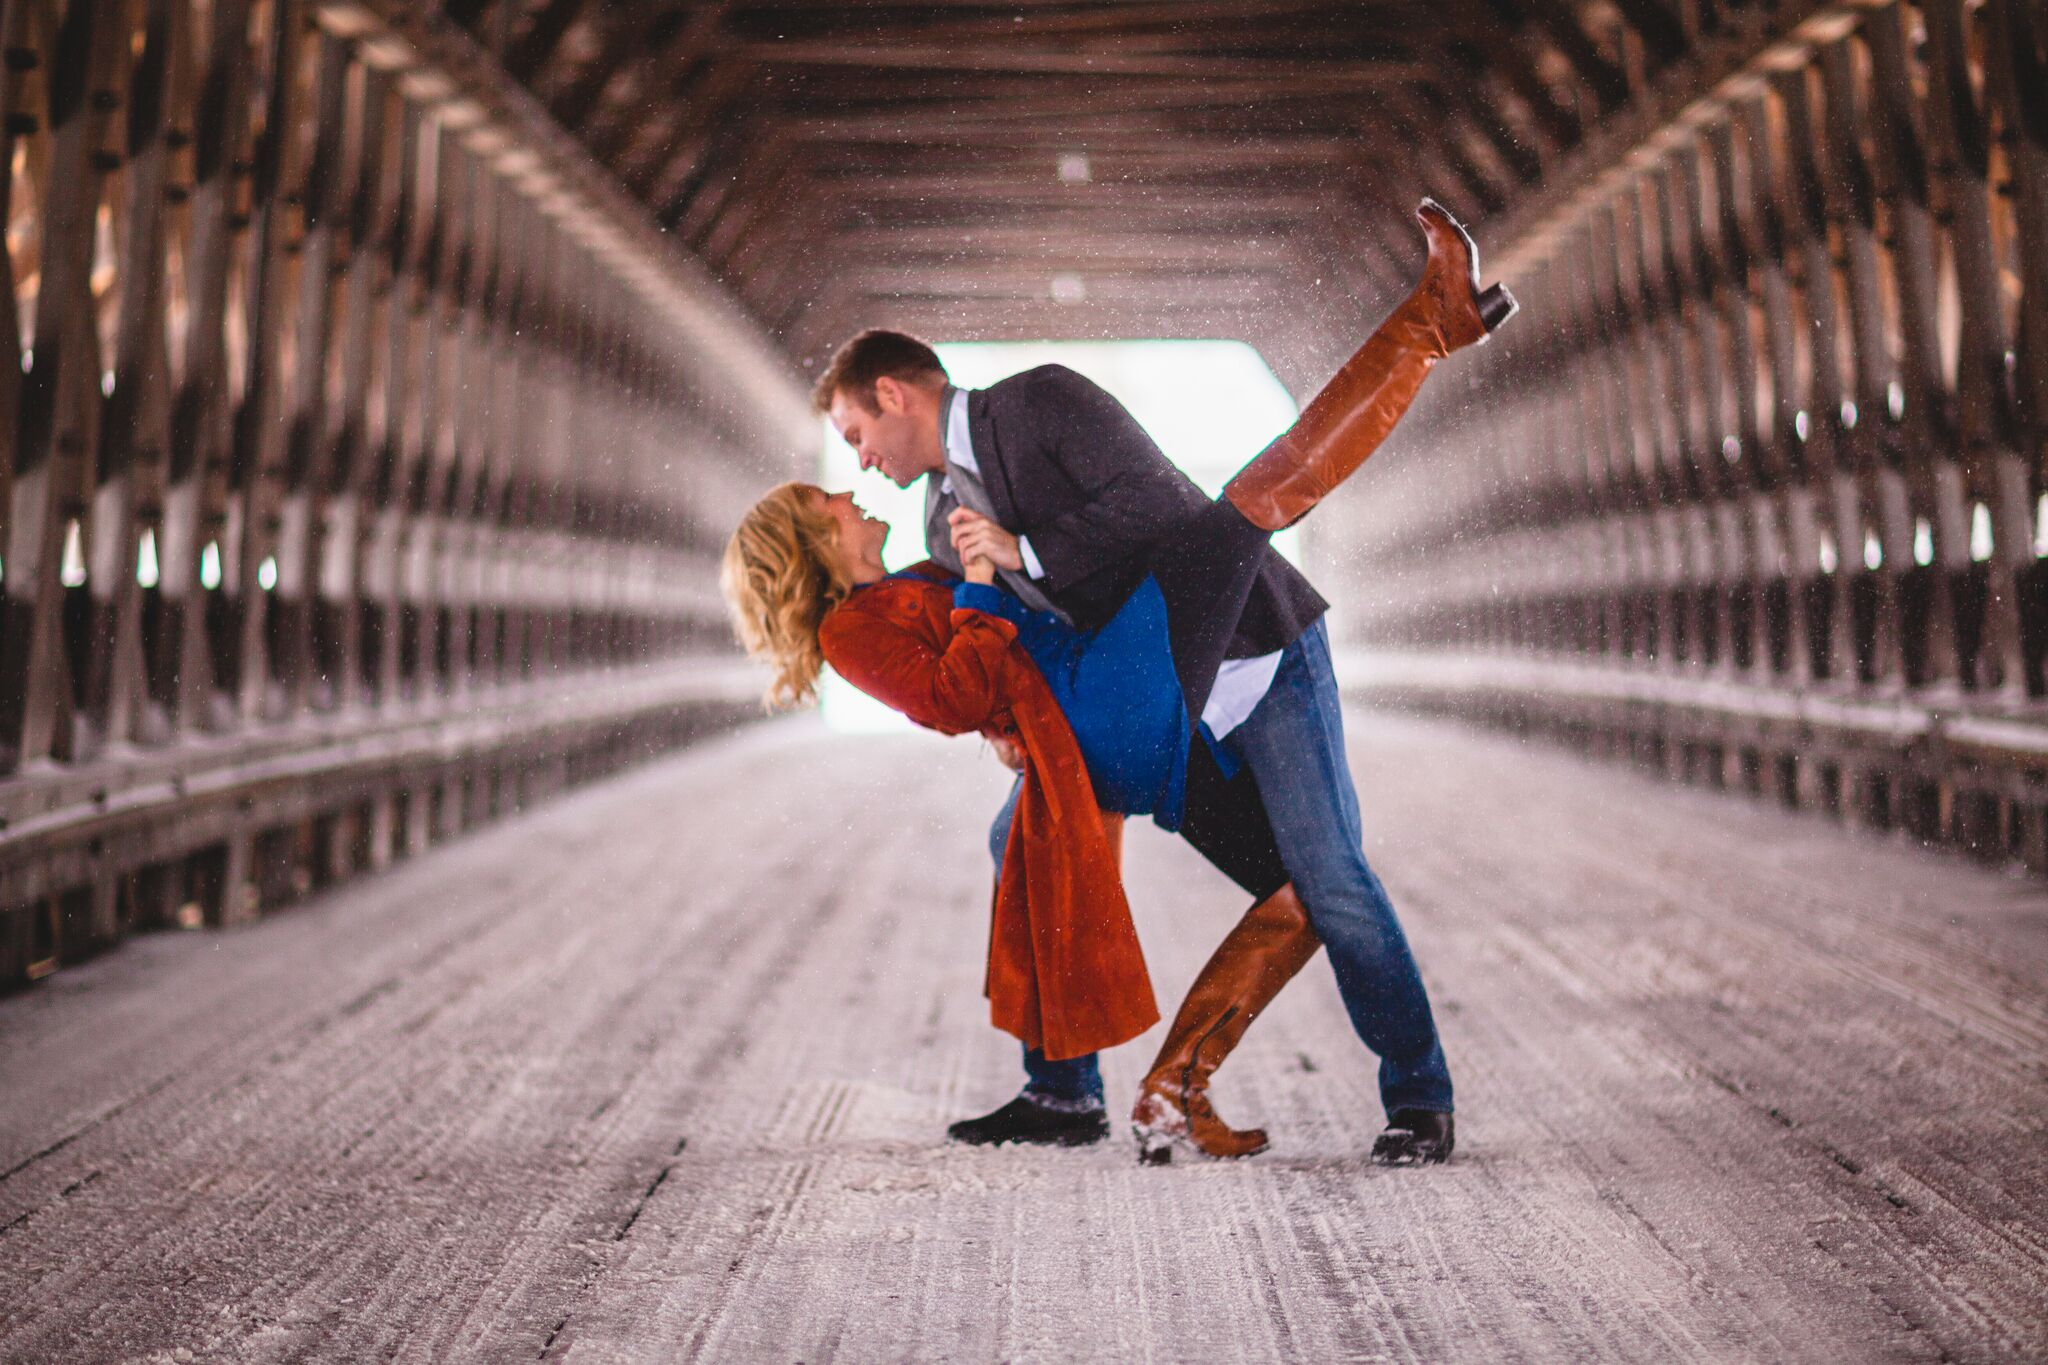 Chiropractor Fenton Michigan - Engagement Photos - Chiropractor Fenton Michigan